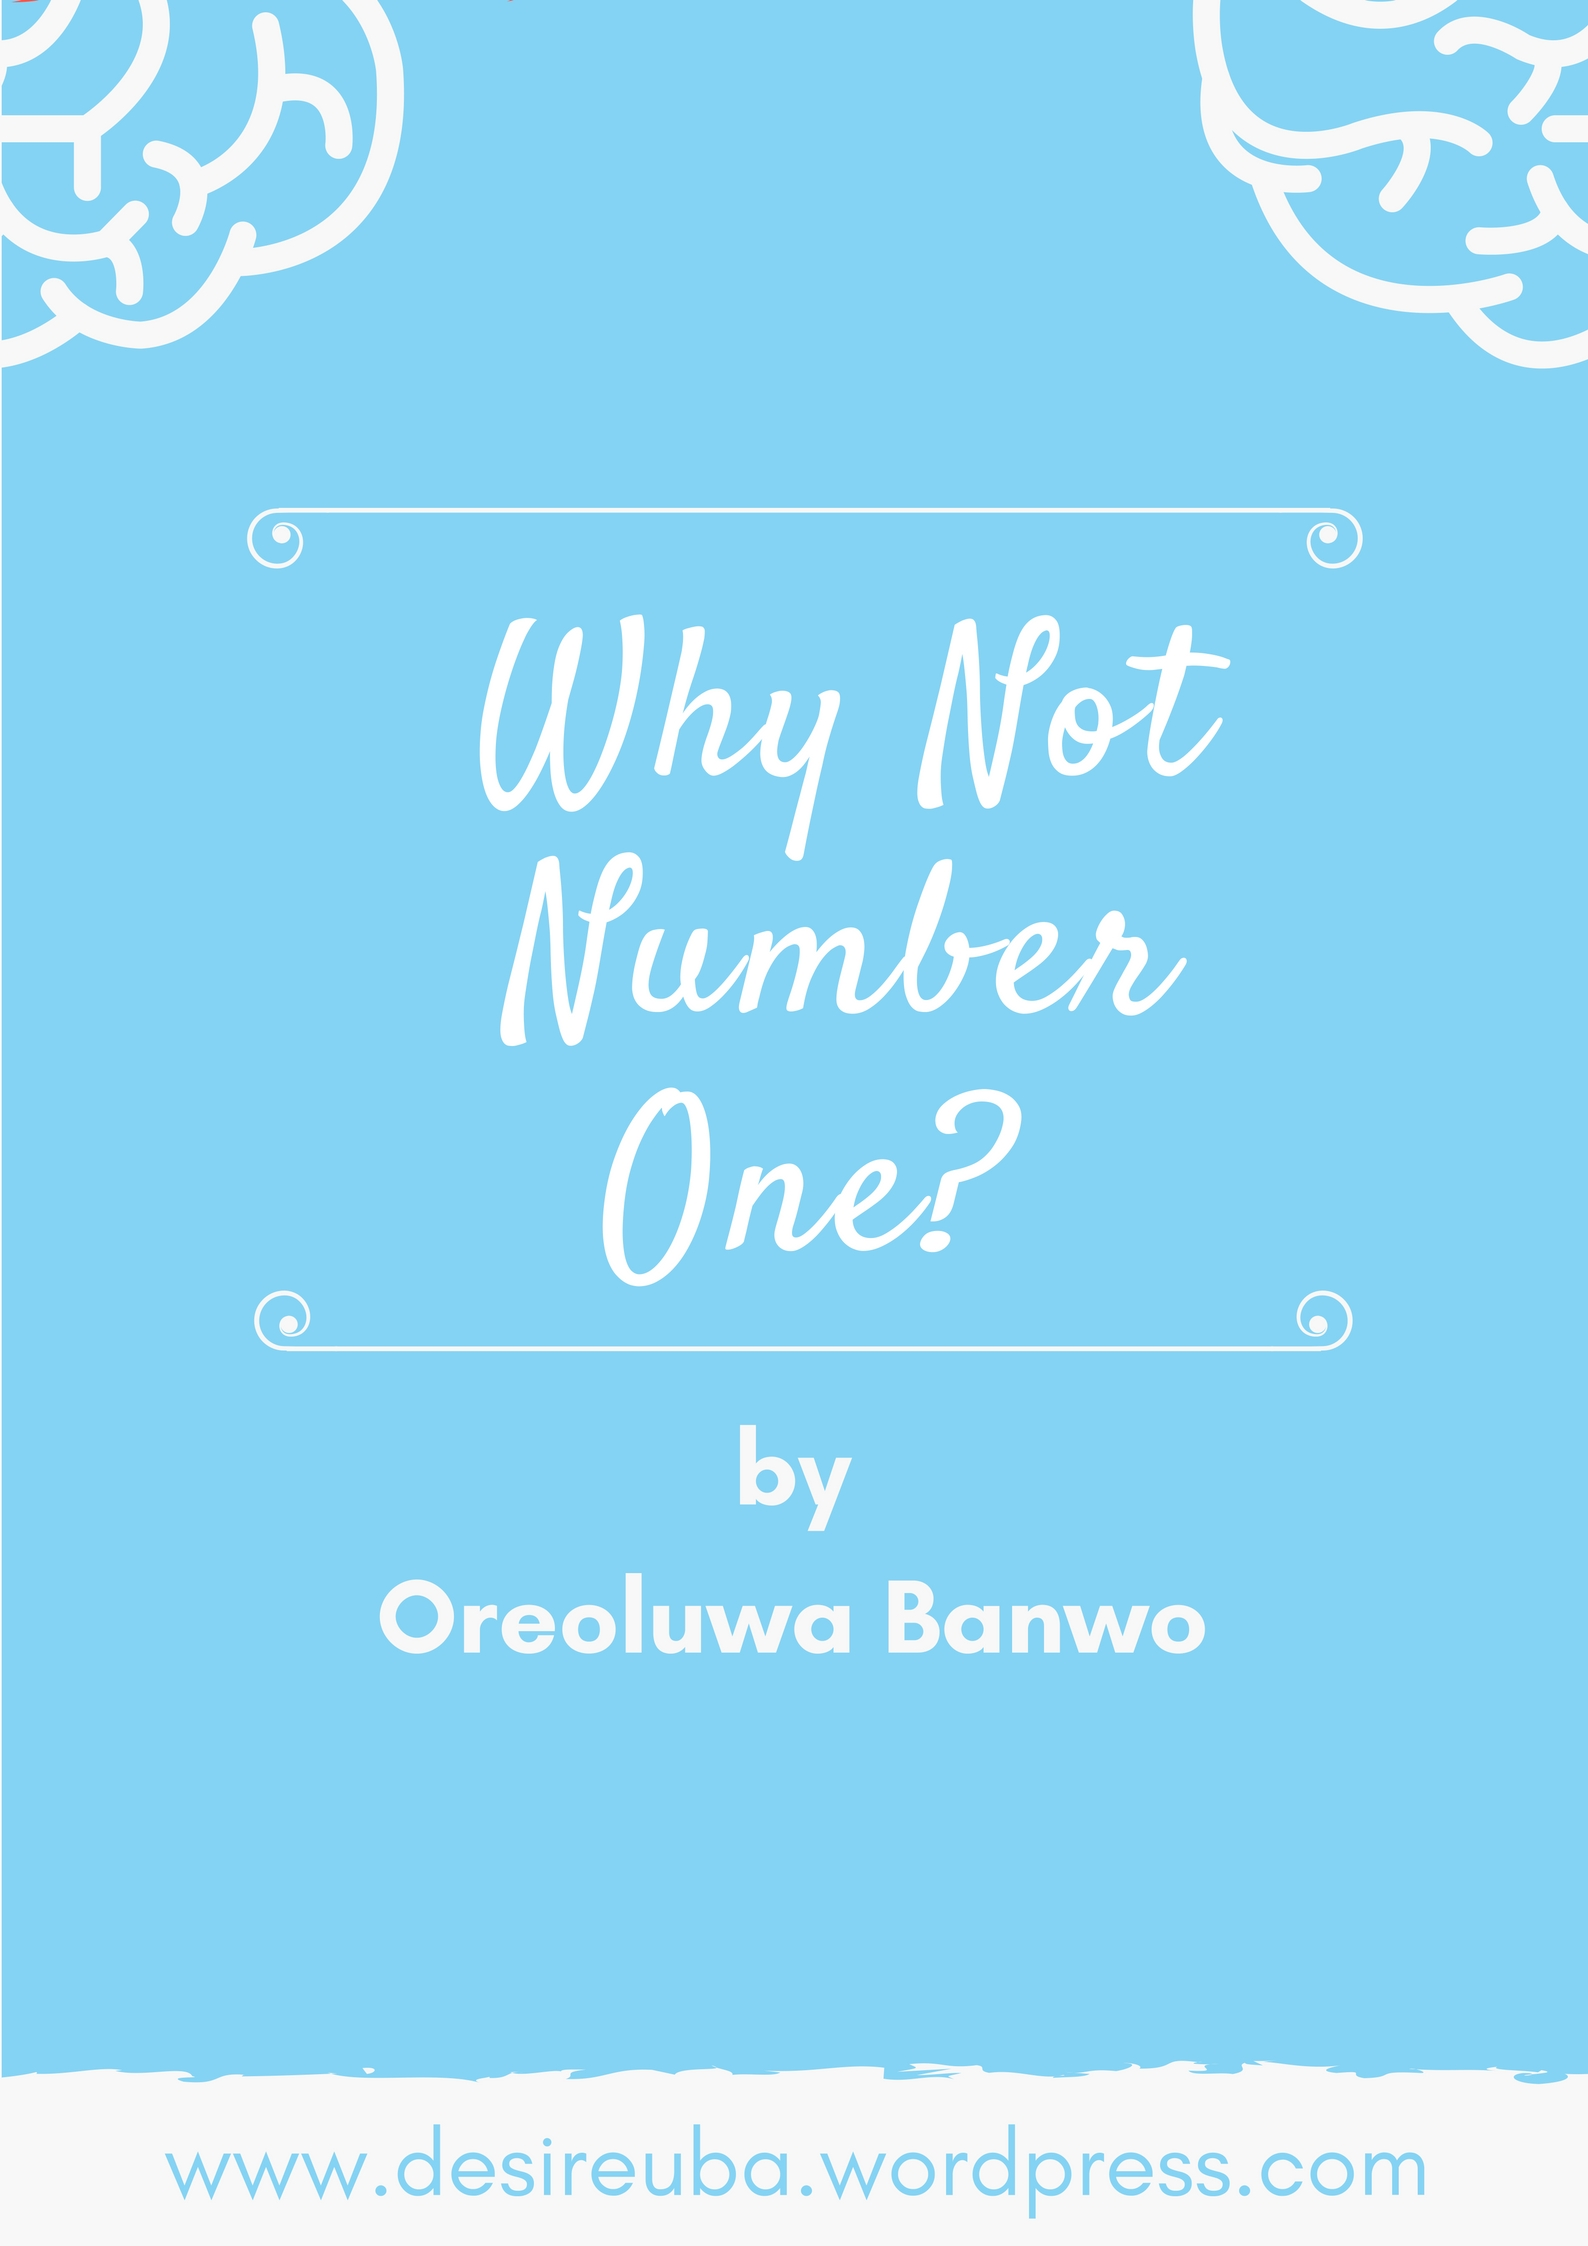 GUEST POST: WHY NOT NUMBER ONE??